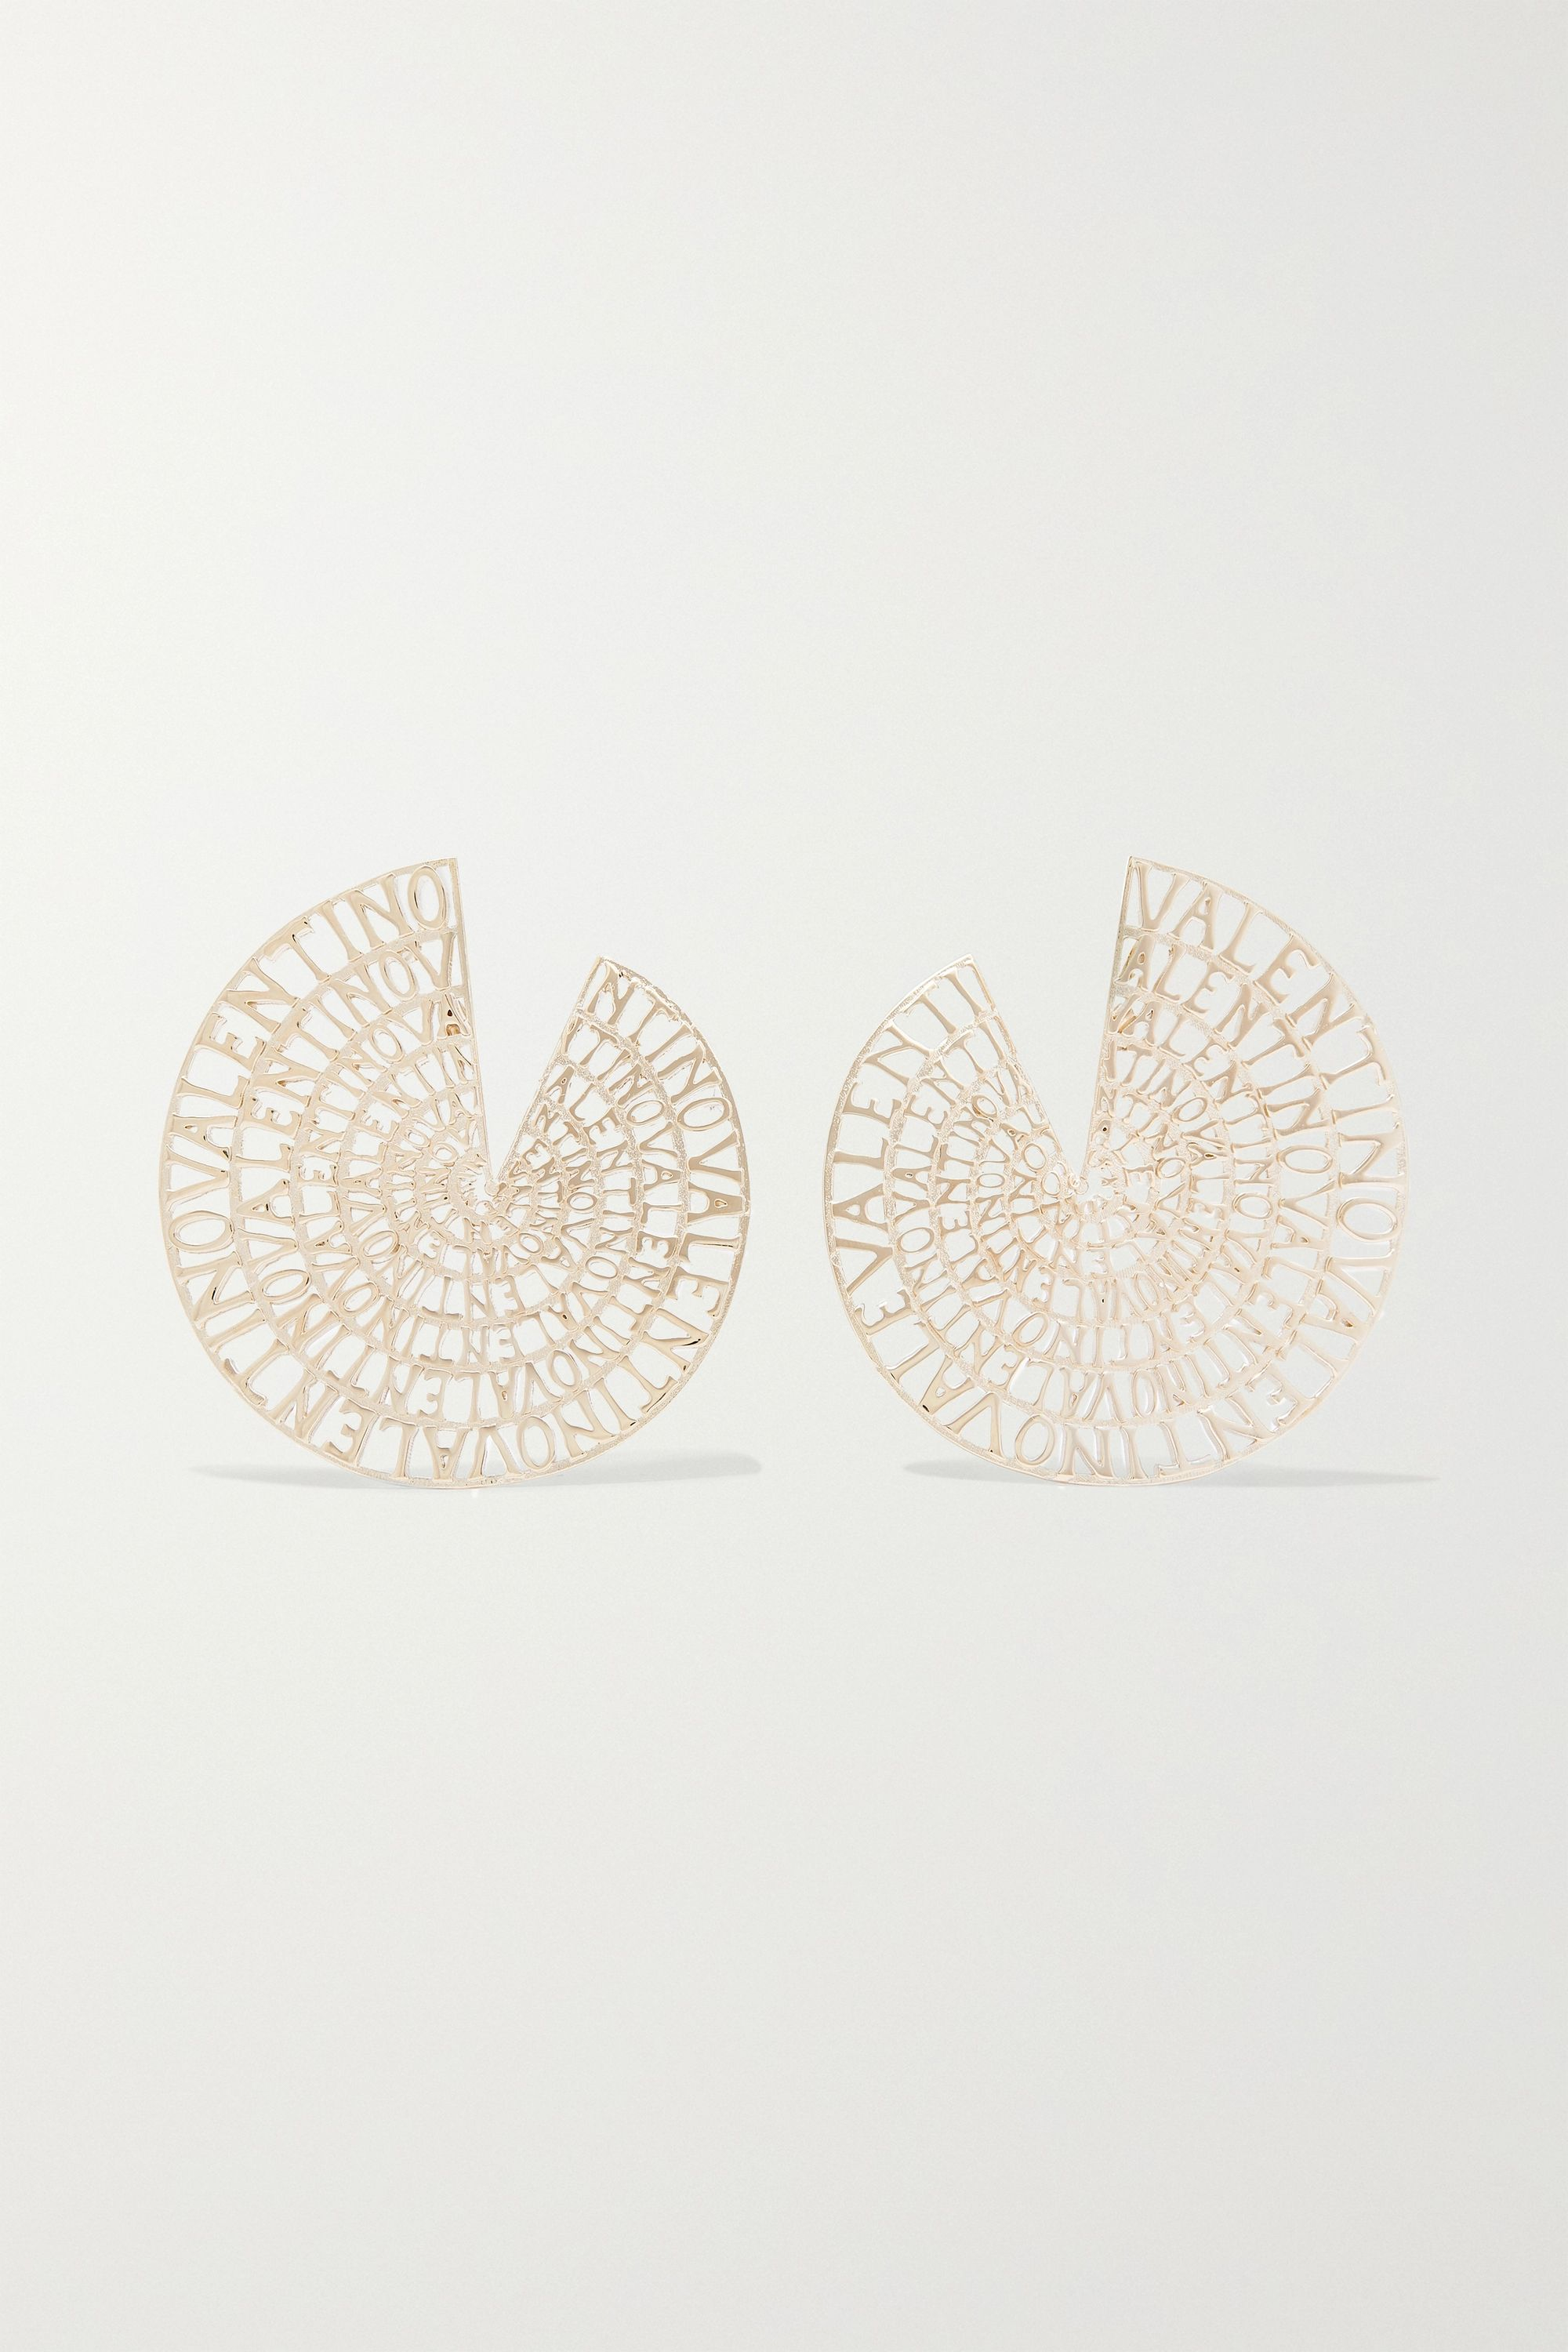 Valentino Valentino Garavani gold-tone earrings